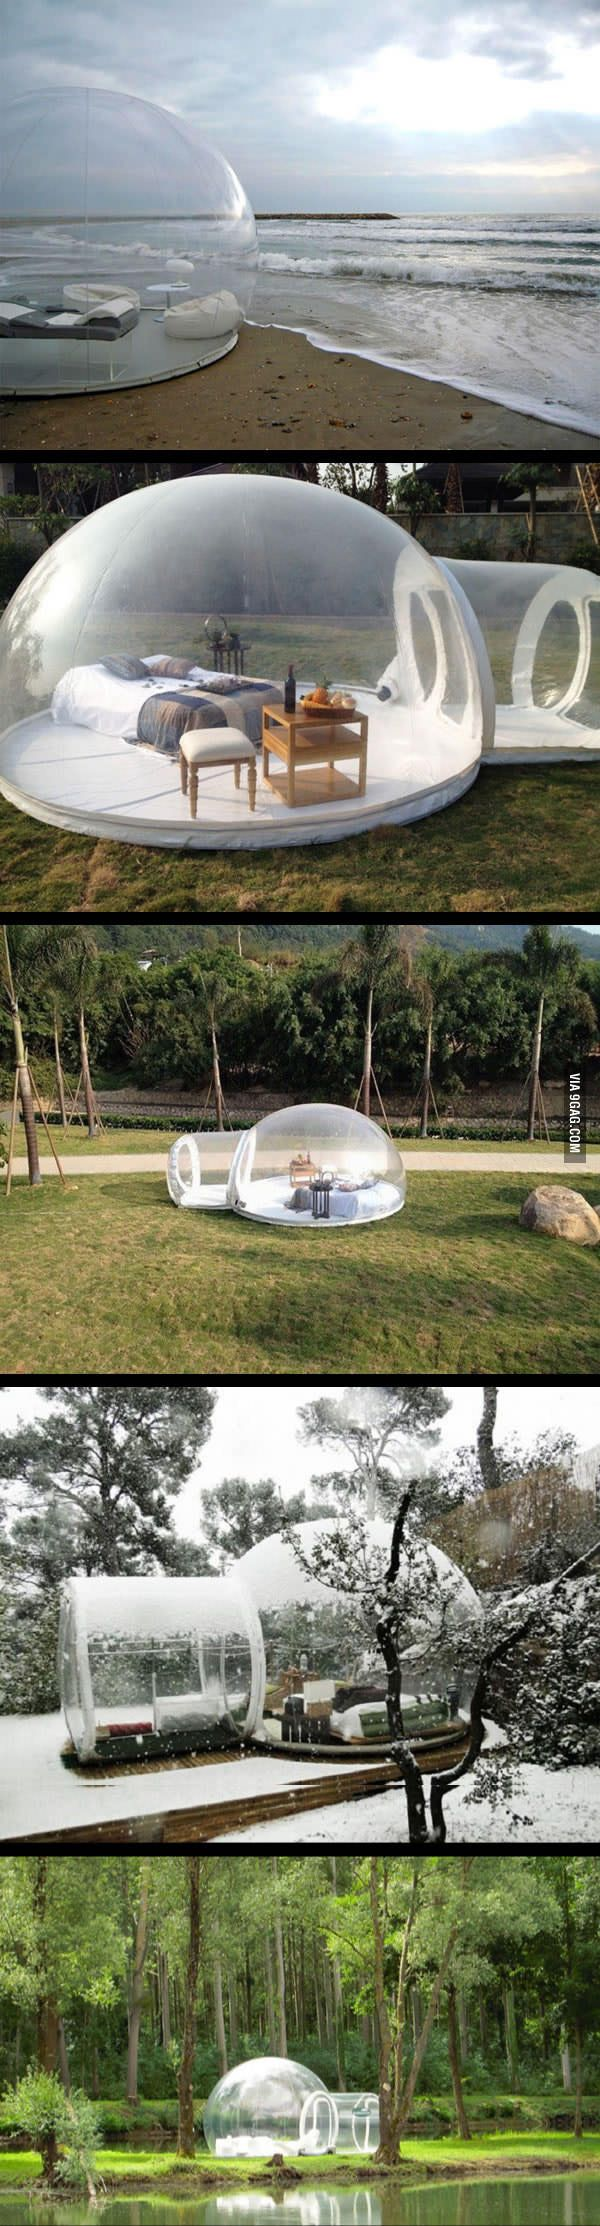 This Transparent Bubble Tent Is What I Need In My Life